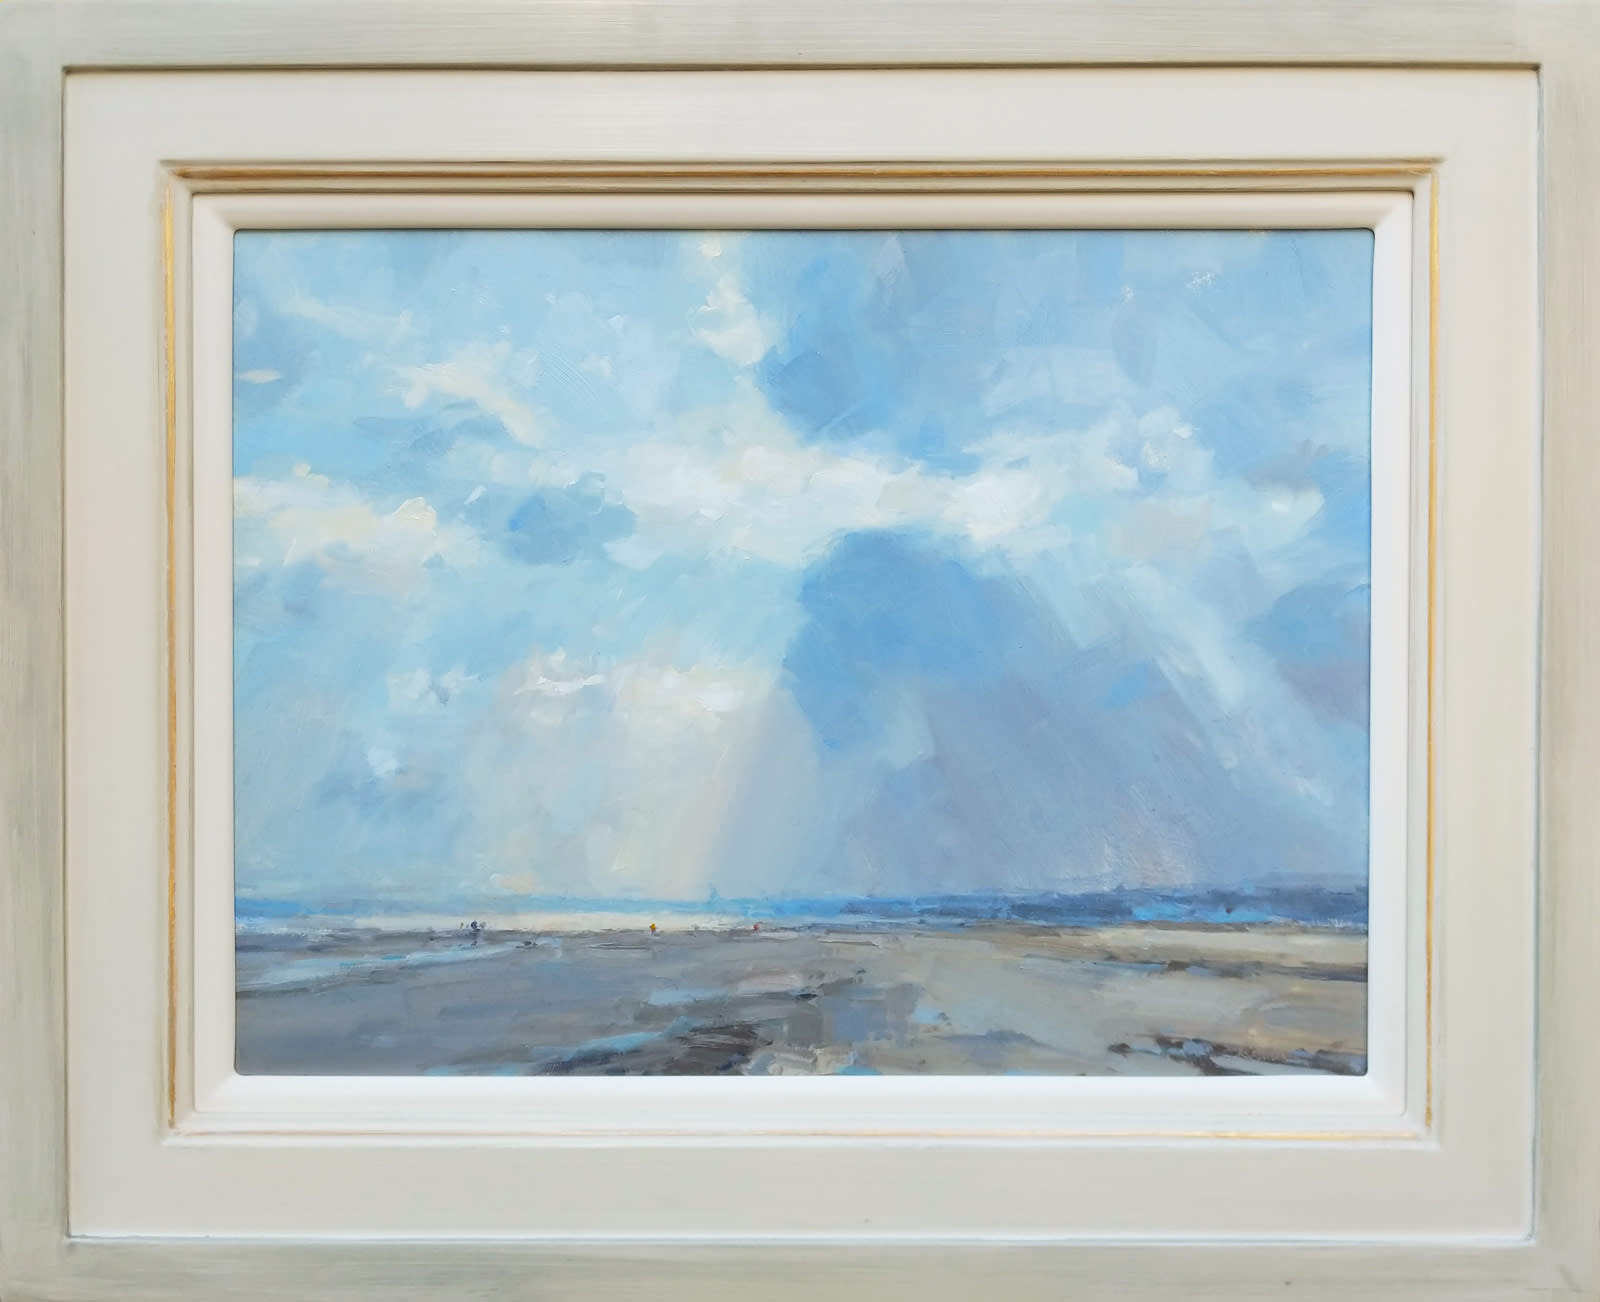 View From the Dunes, Harry Brioche